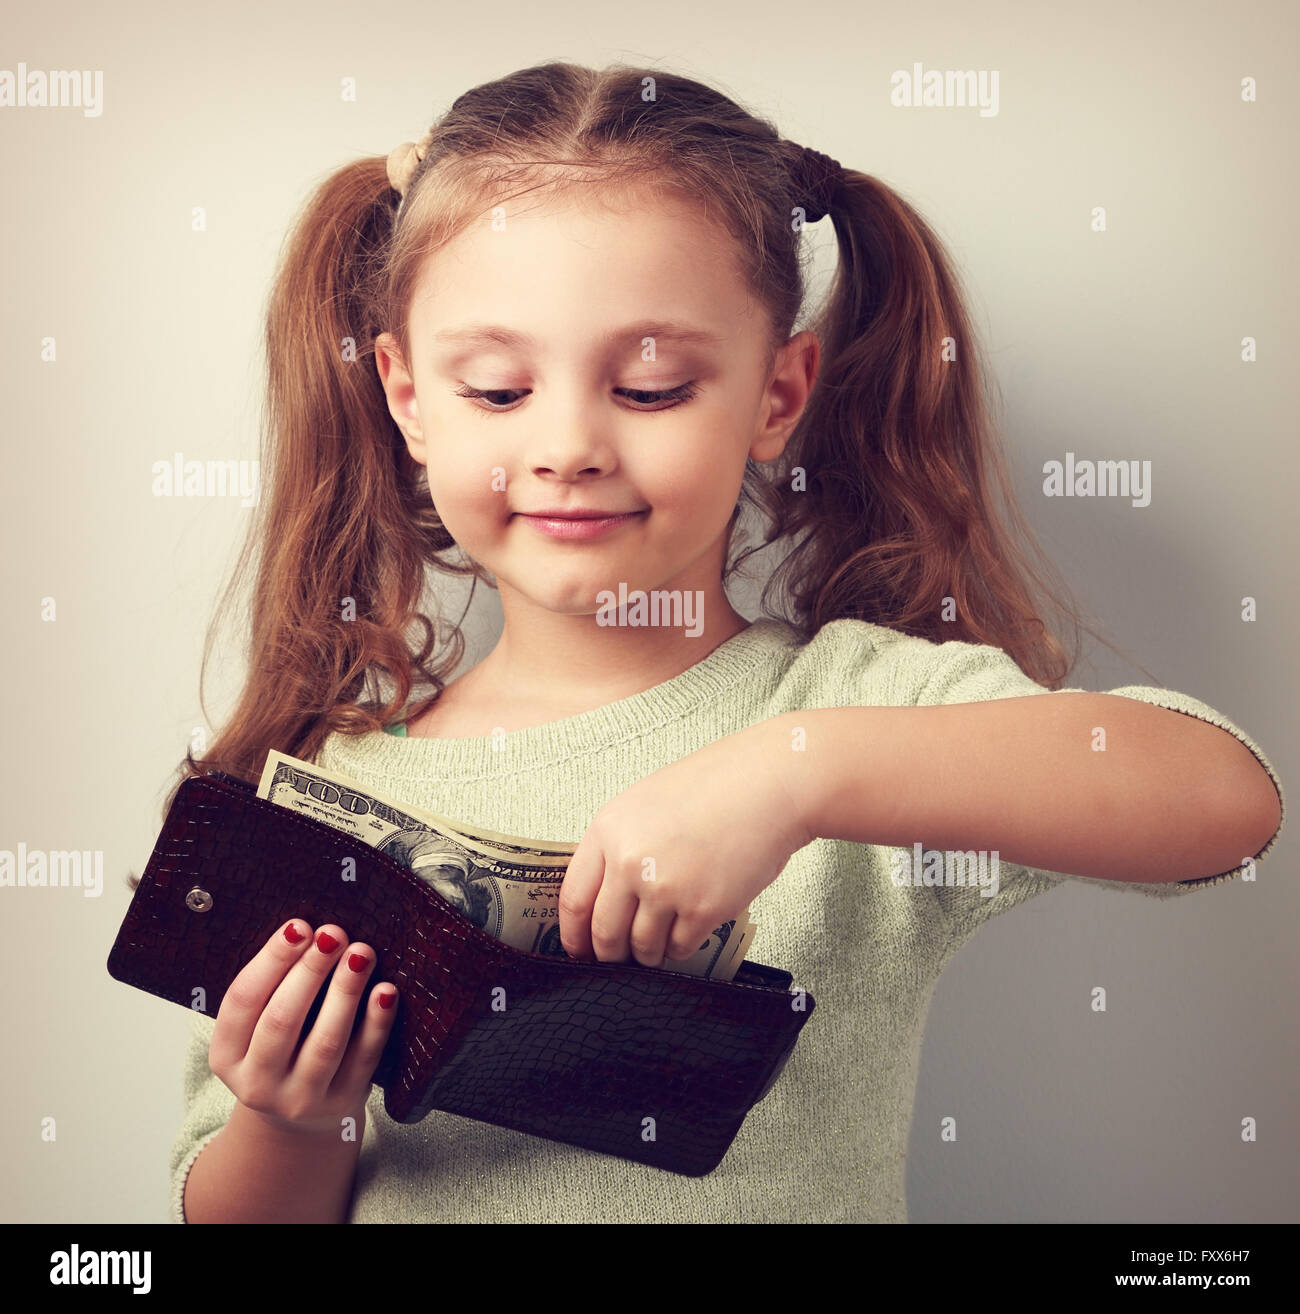 Cute small kid girl taking dollars from mother wallet and looking happy. Toned closeup portrait - Stock Image